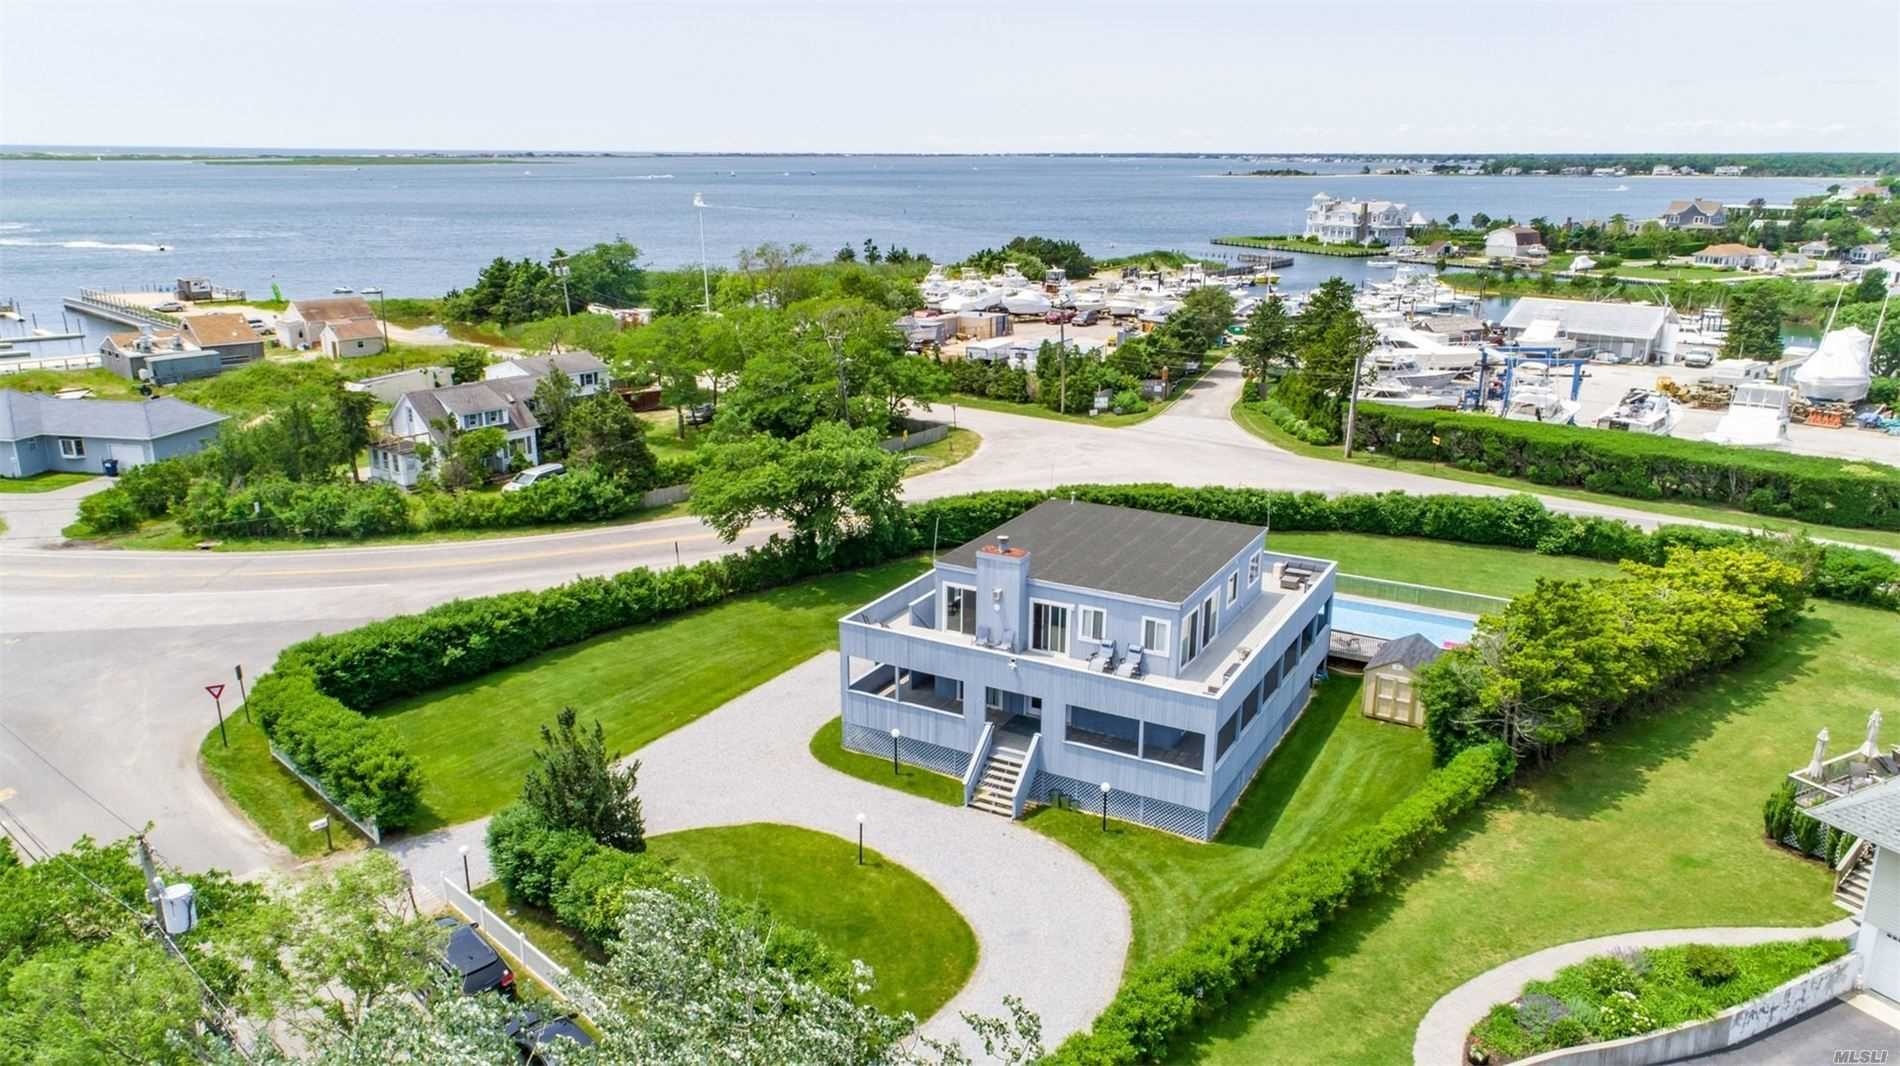 24 Lighthouse Rd - Hampton Bays, New York